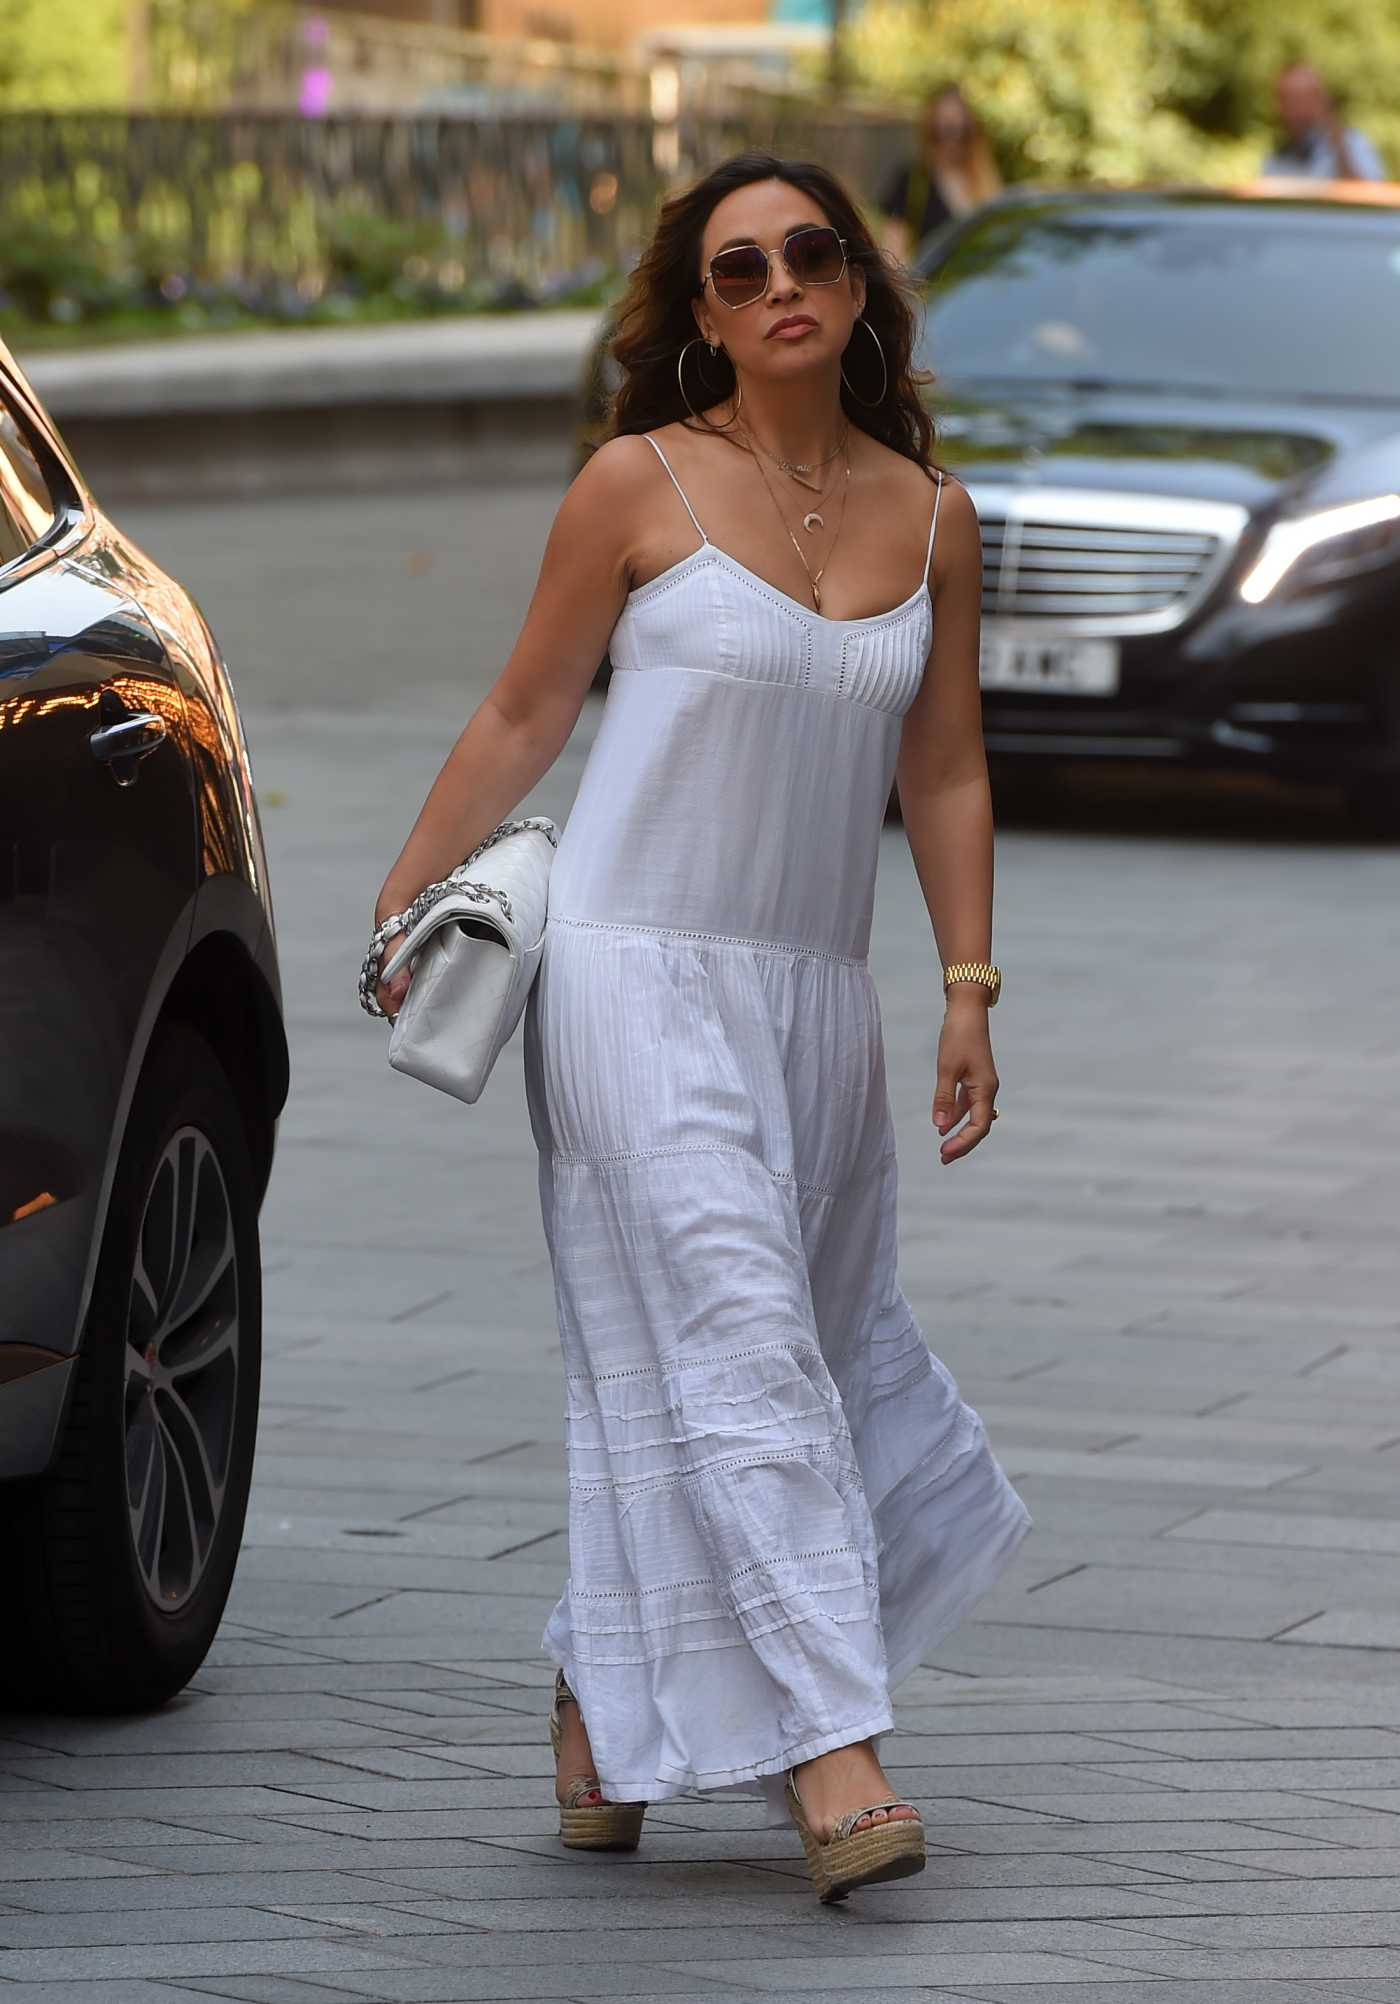 Myleene Klass in a White Summer Dress Arrives at the Smooth Radio in London 06/24/2020